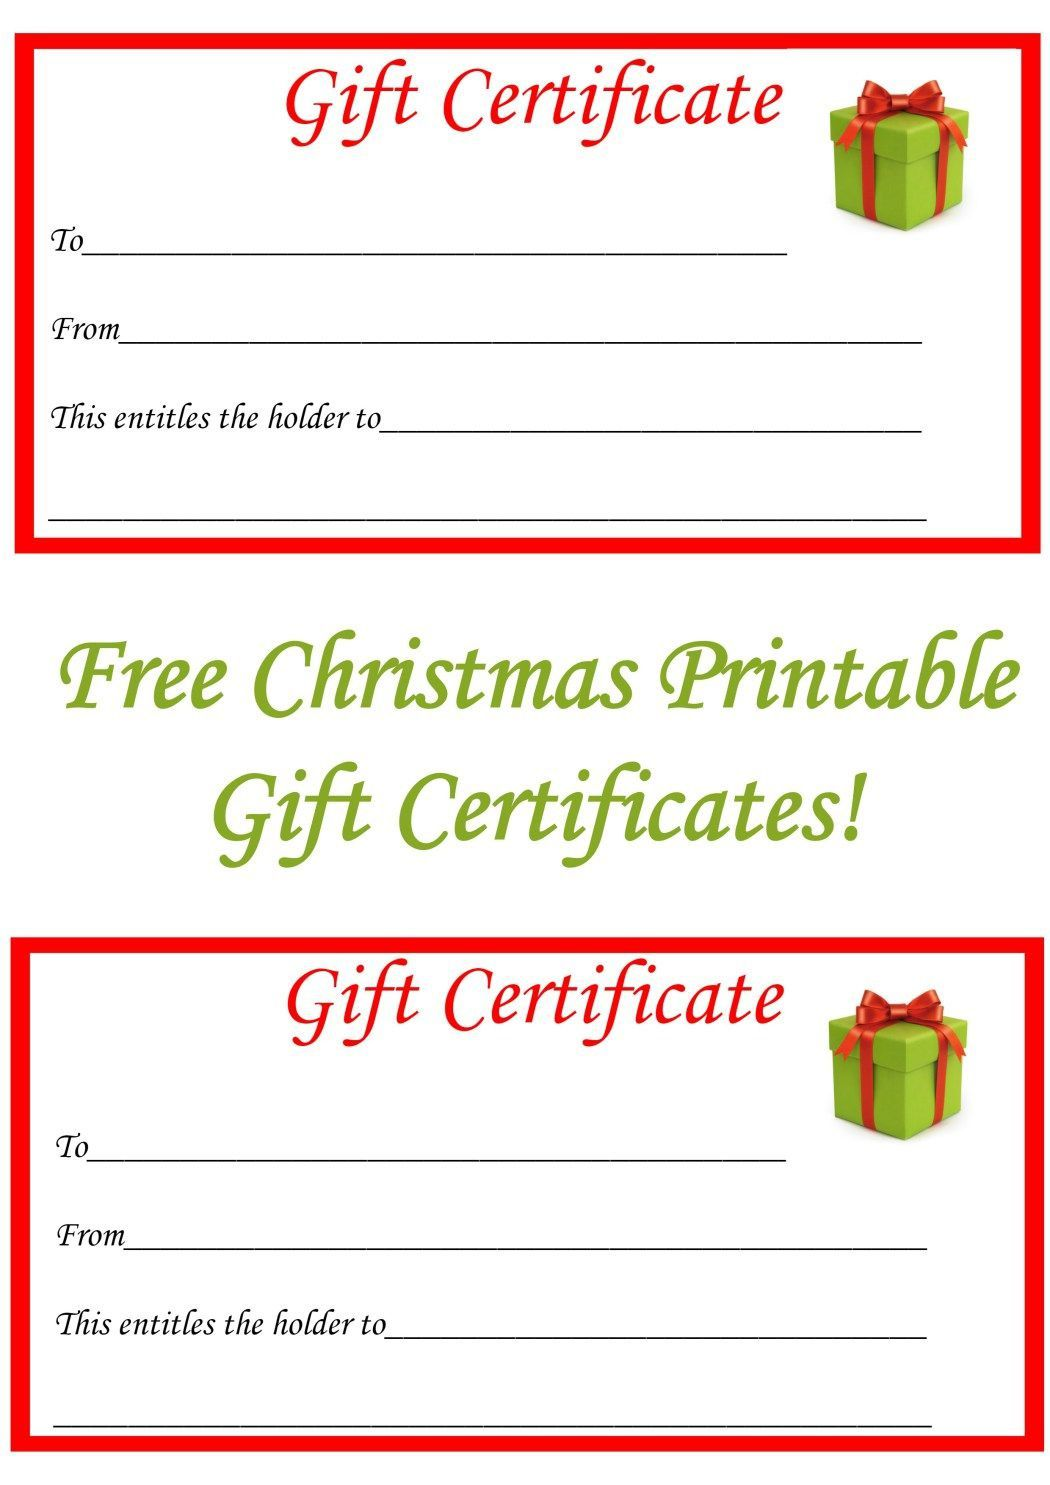 001 Simple Printable Gift Certificate Template Highest Quality  Card Free Christma MassageFull